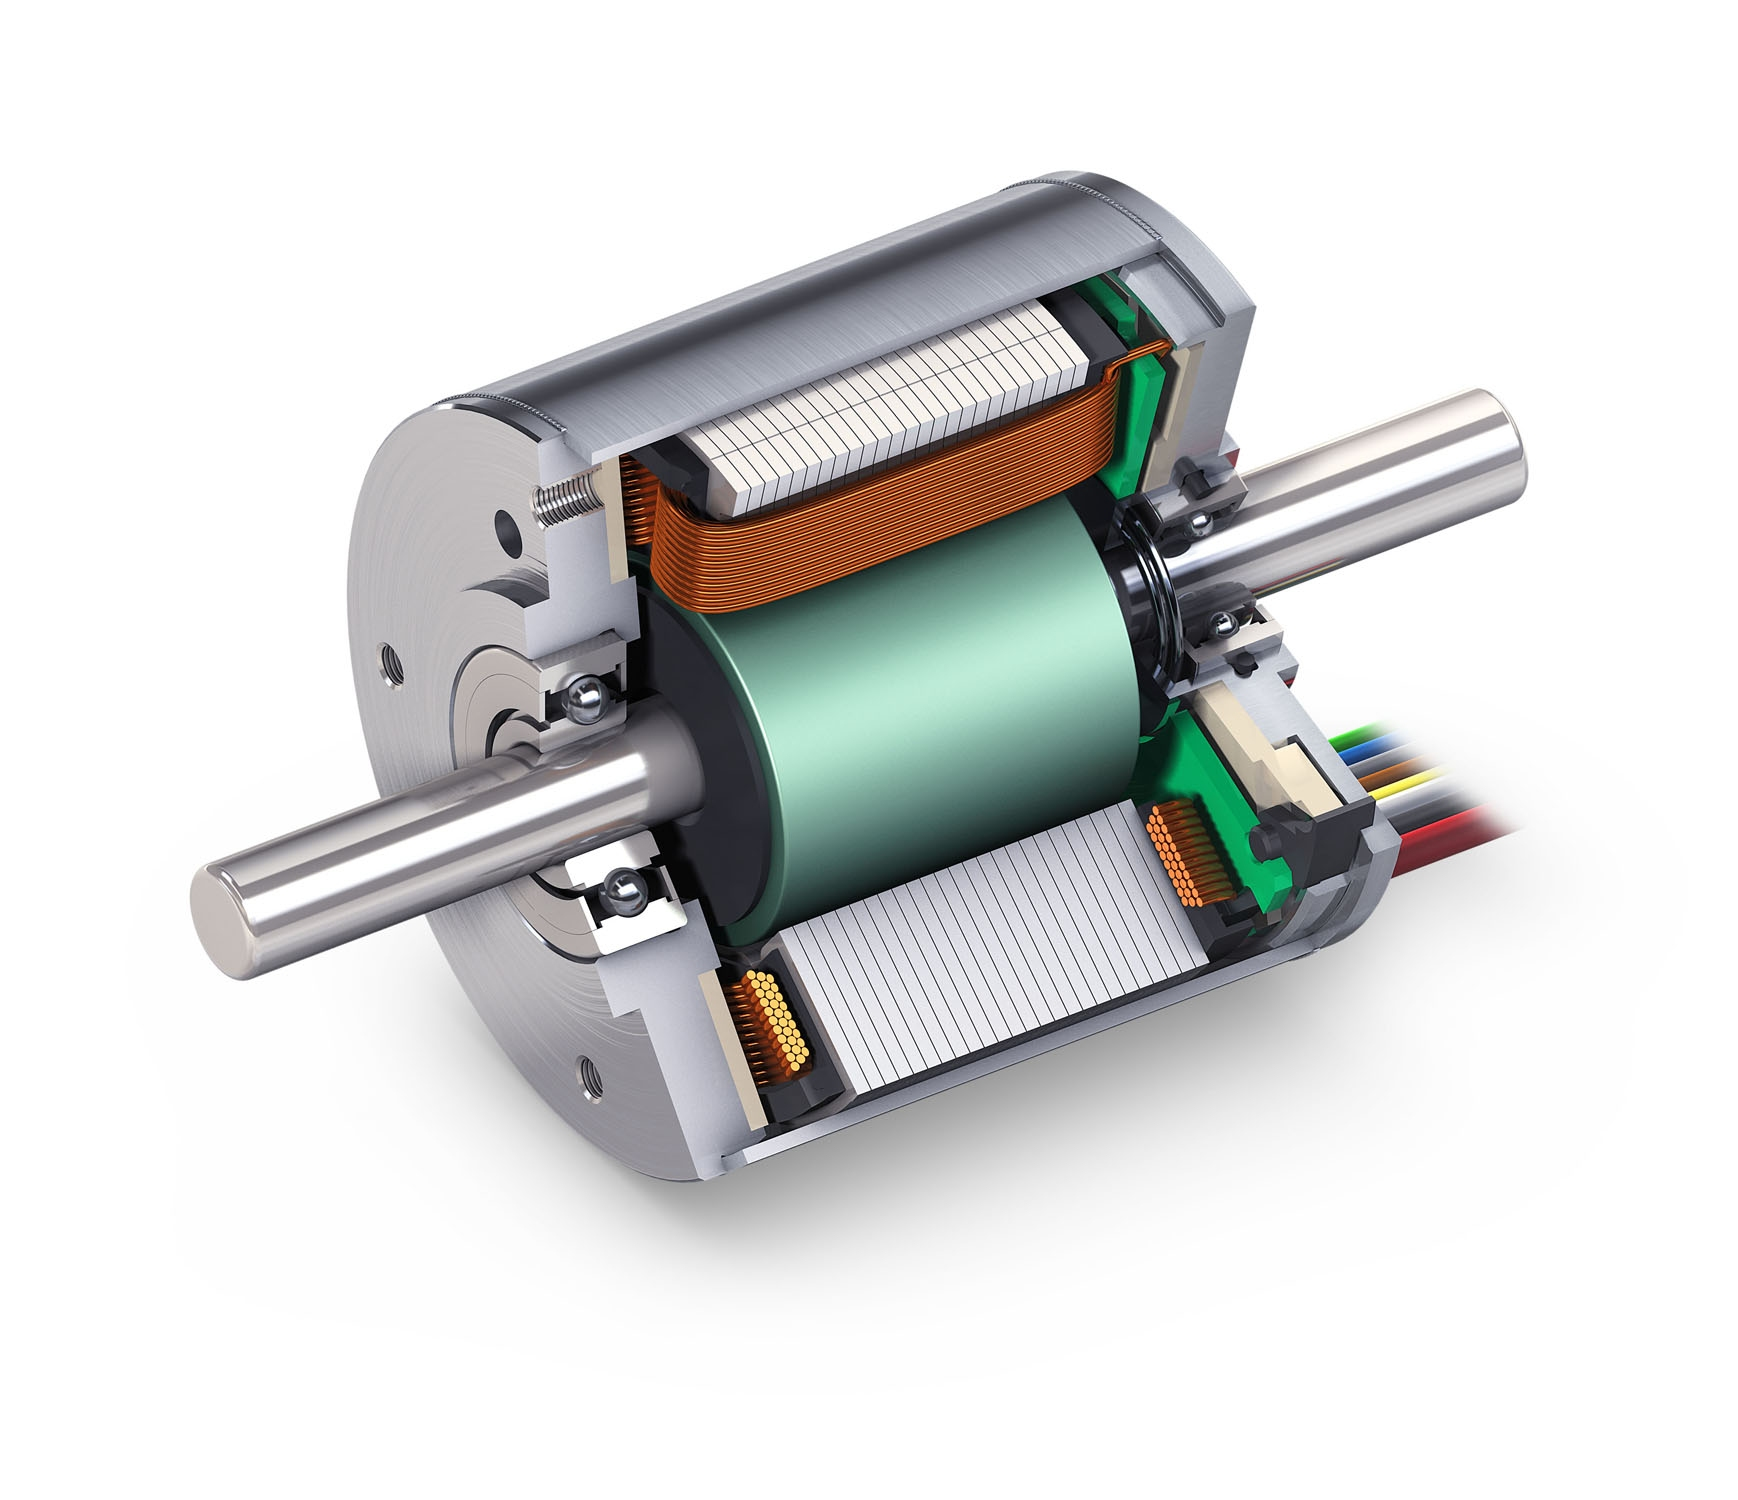 Dc msd motion system design for Very small electric motors